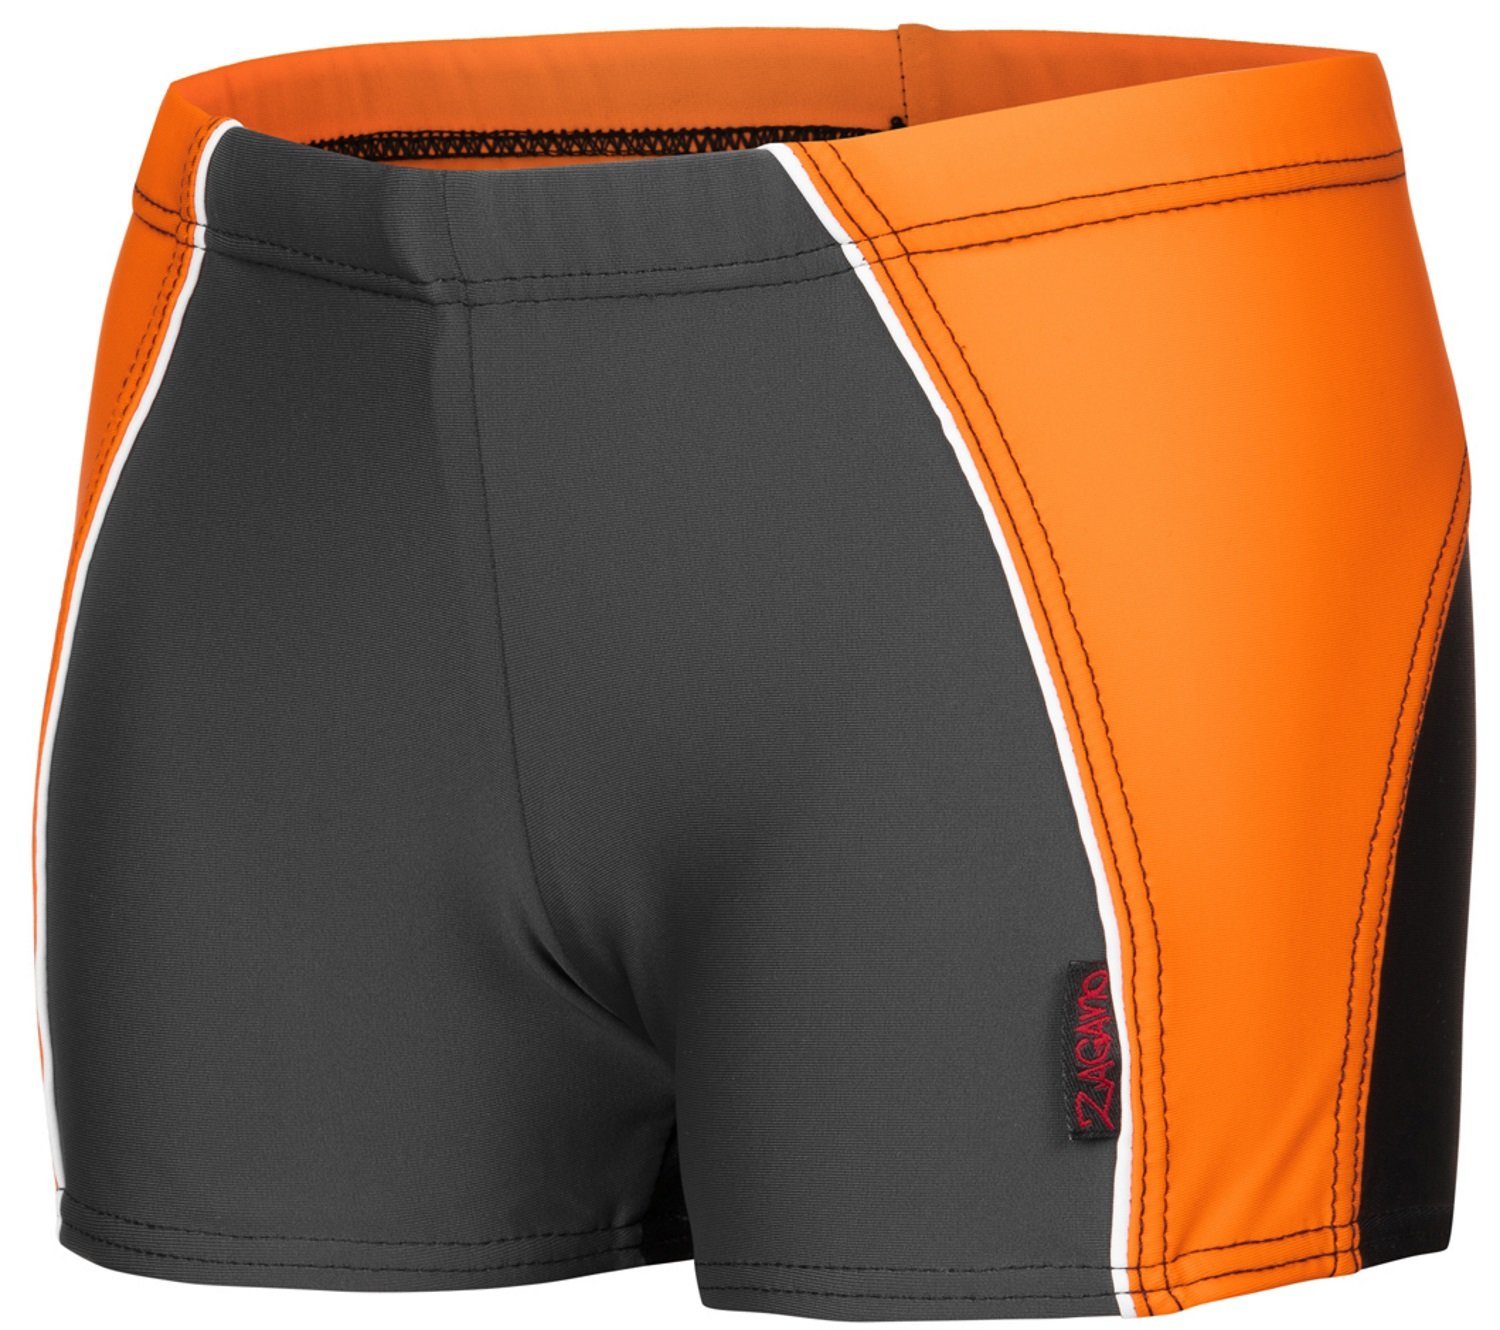 Zagano Children's Boy's 2817 Zagano Kinderbadehose 2817